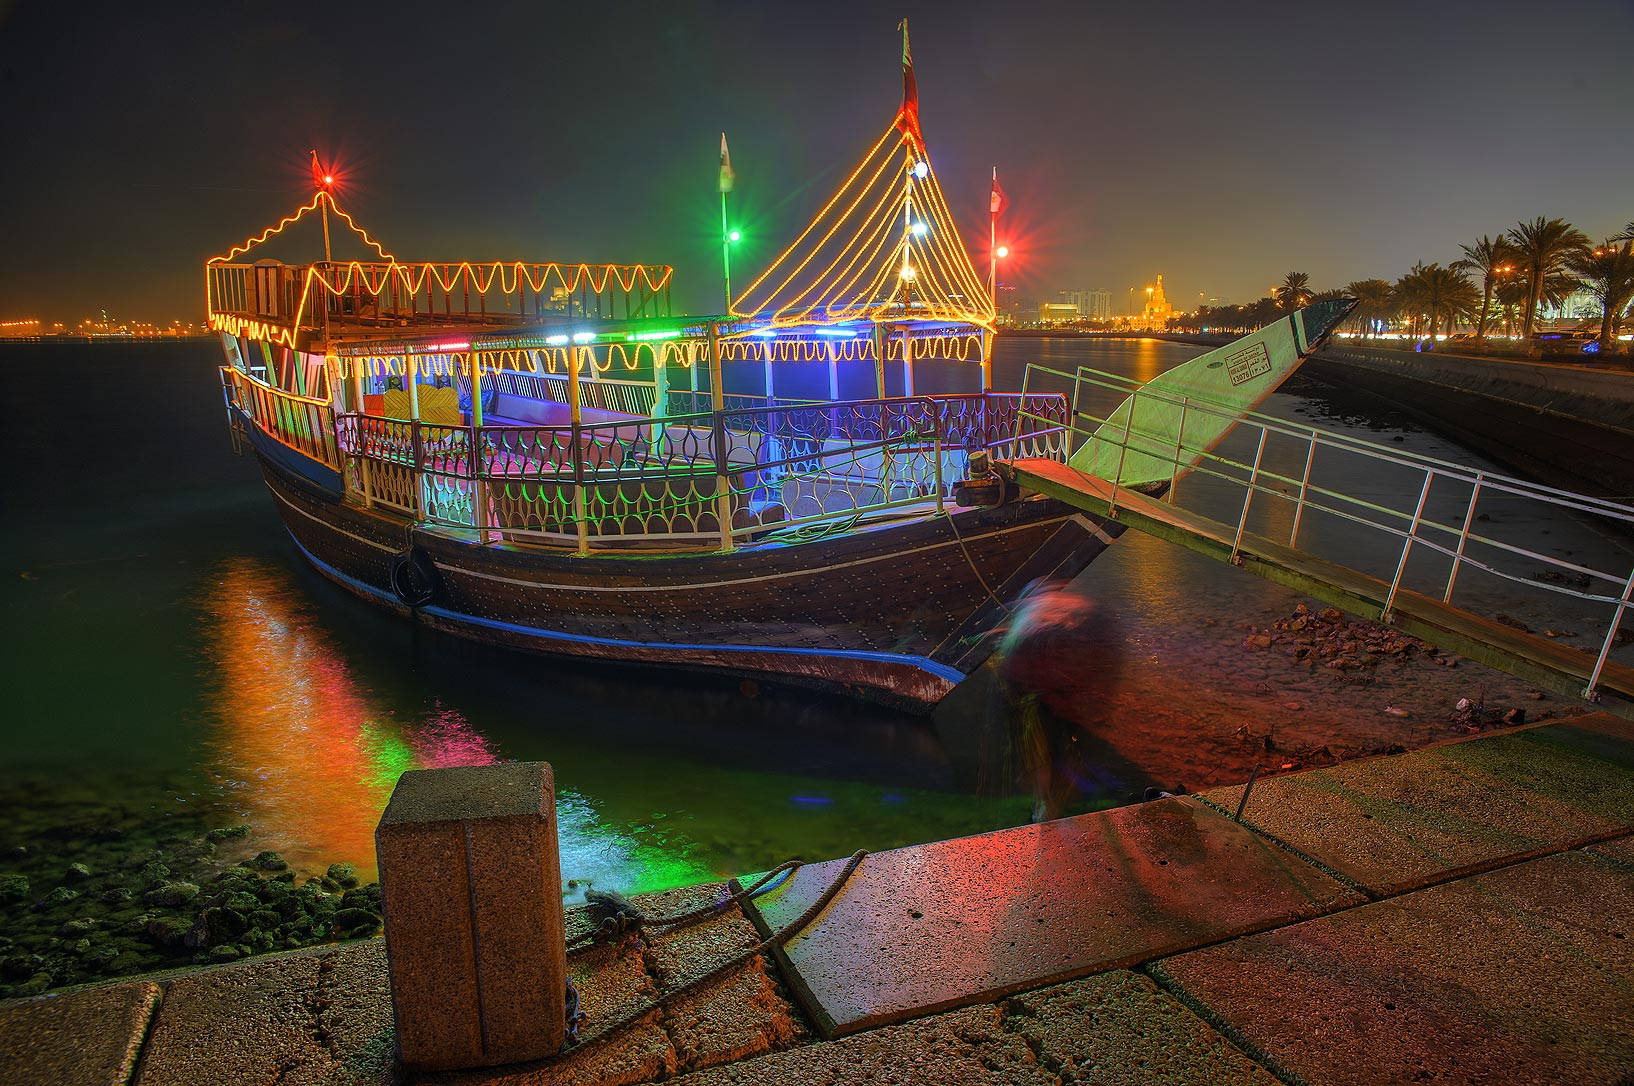 Dhow boat for tourists at Corniche promenade at evening. Doha, Qatar